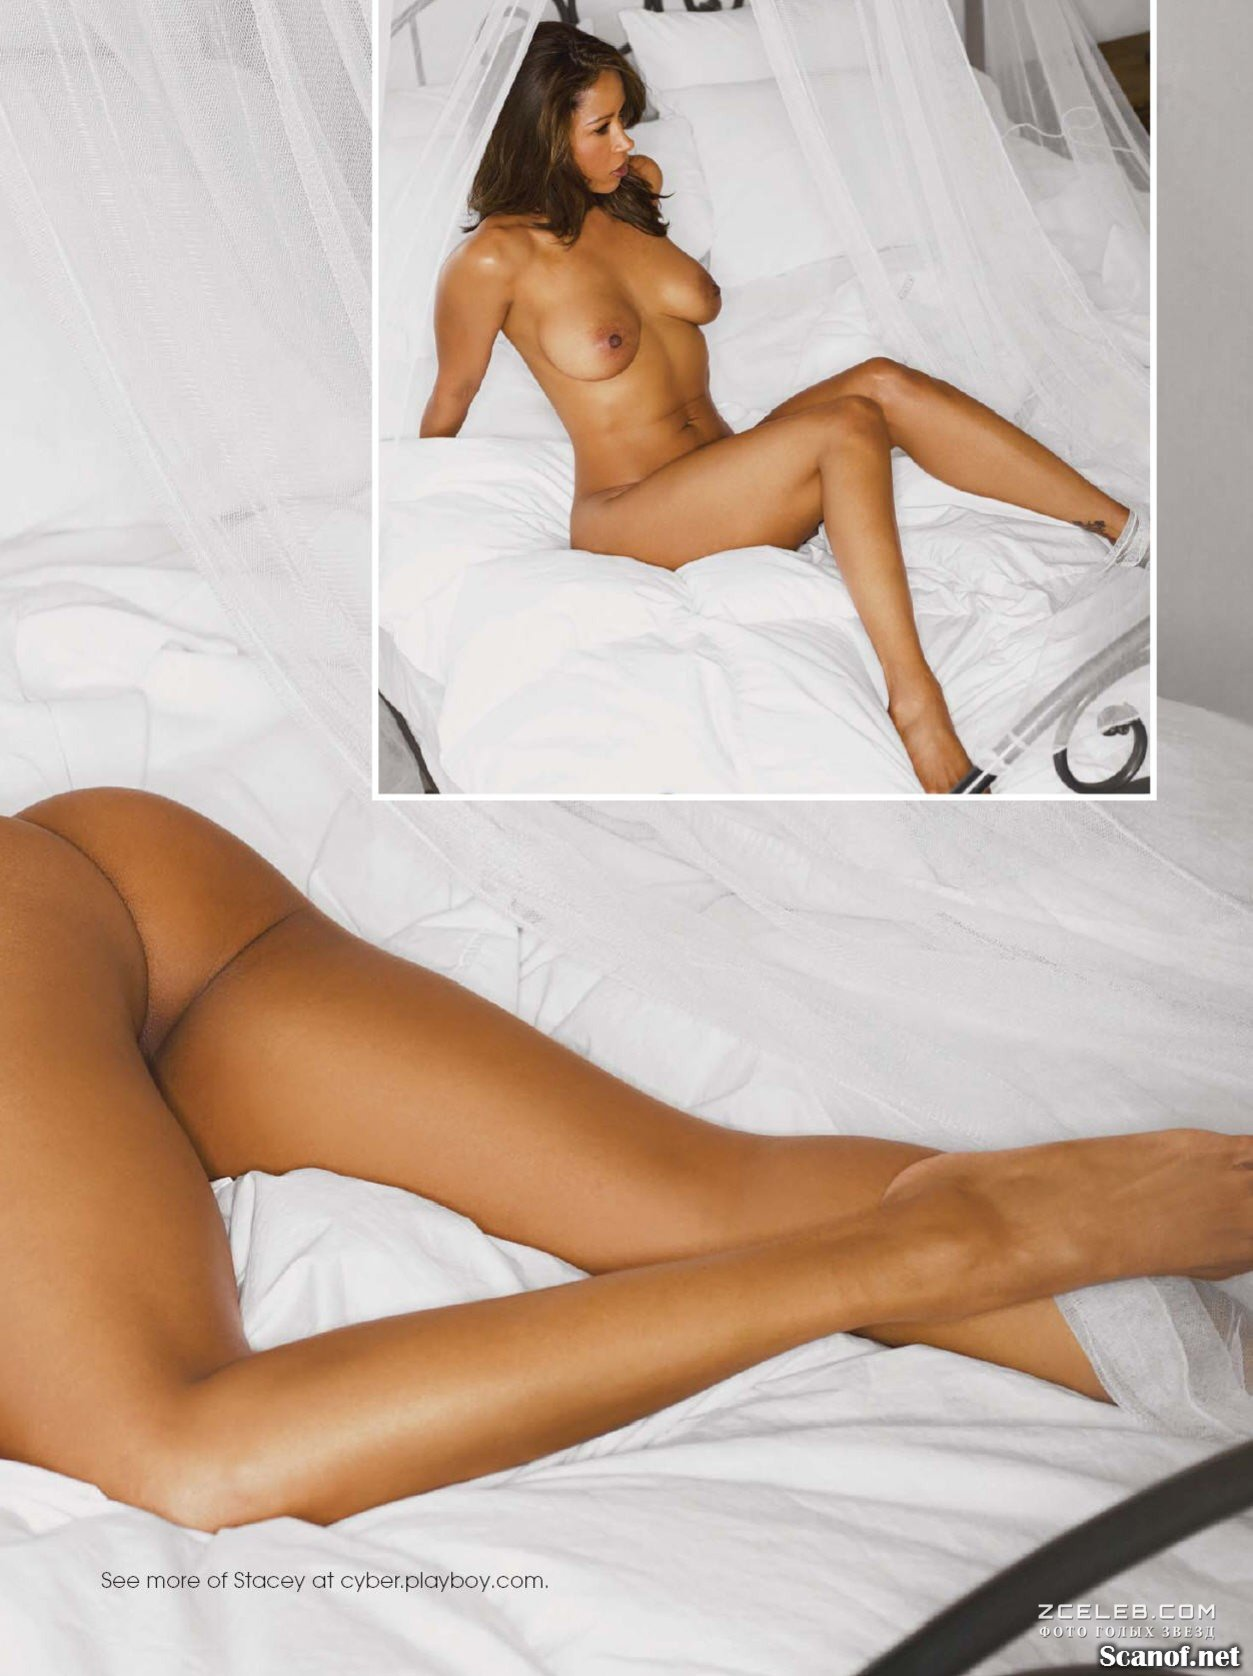 Stacey dash naked phots